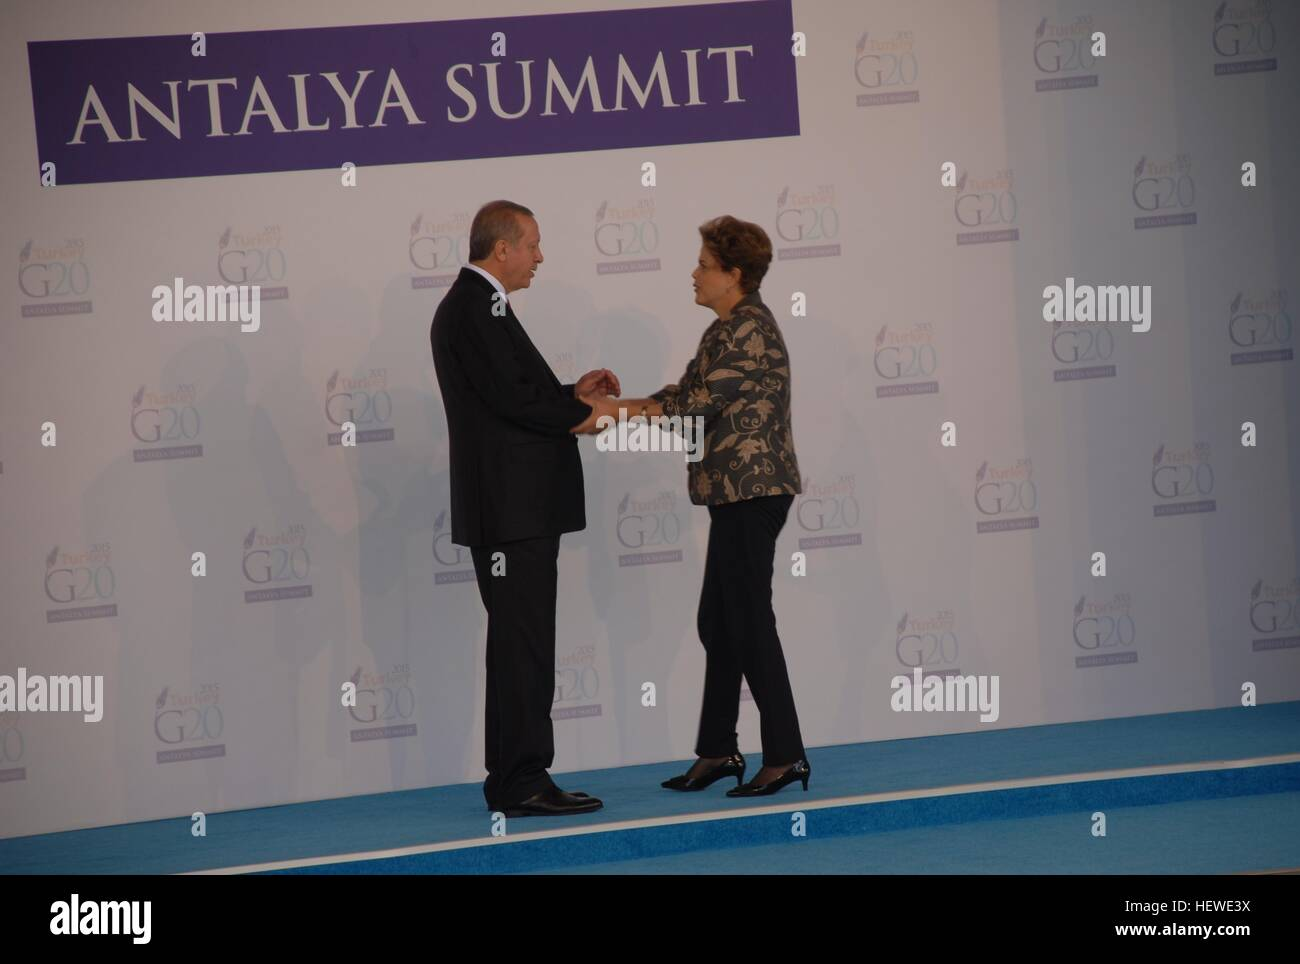 Turksih President Recep Tayyip Erdogan (L) greets Brazilian President Dilma Rousseff at the G20 summit. - Stock Image